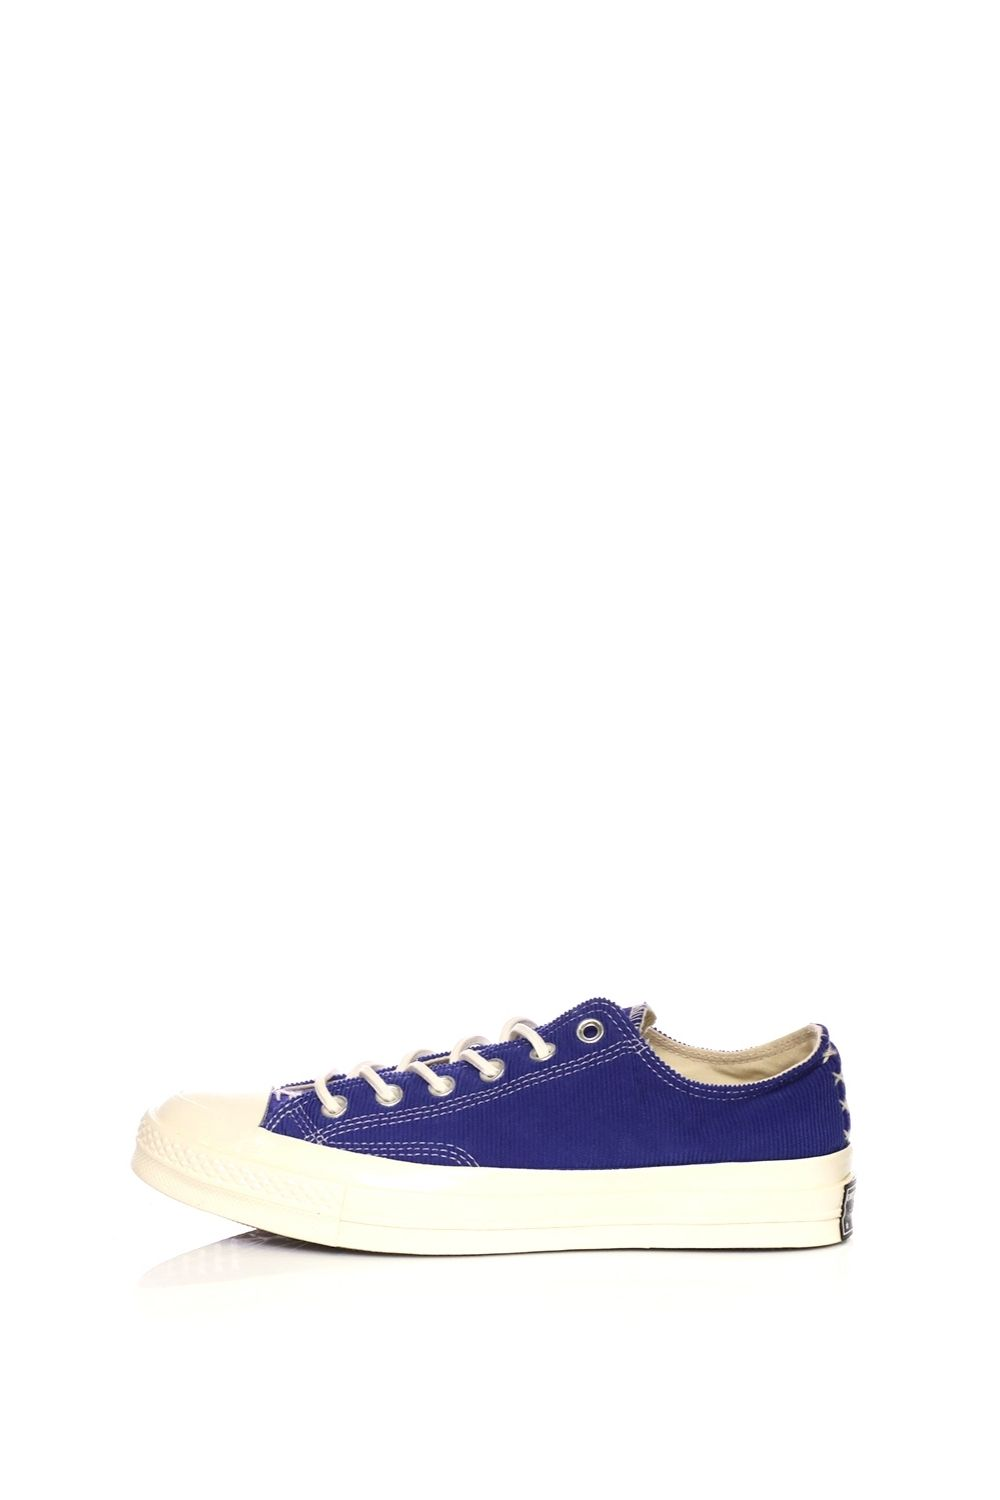 CONVERSE - Υφασμάτινα Παπούτσια CONVERSE QS CTAS '70 FRENCH WORKWEAR OX Μπλε